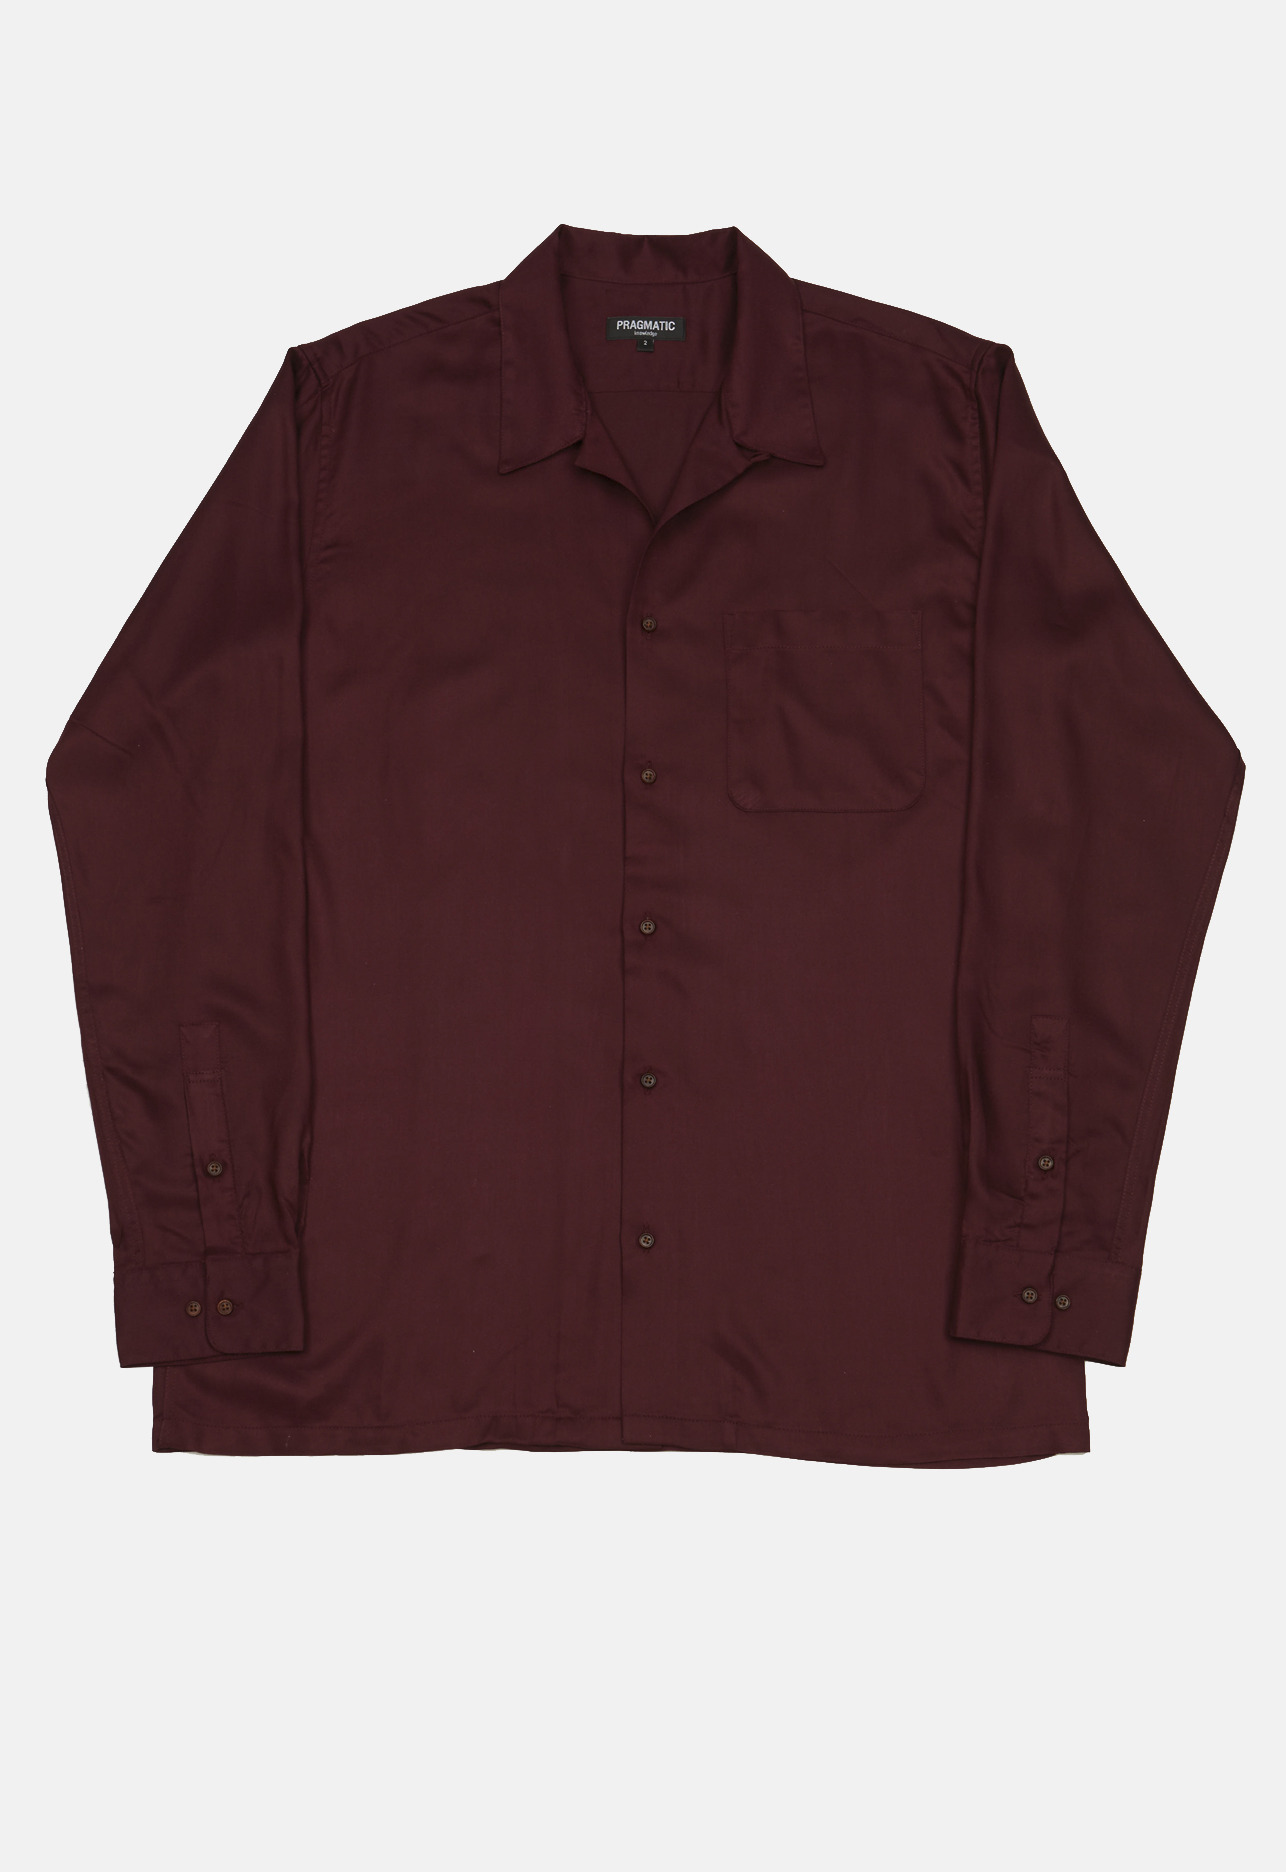 OPEN SHIRTS BURGUNDY